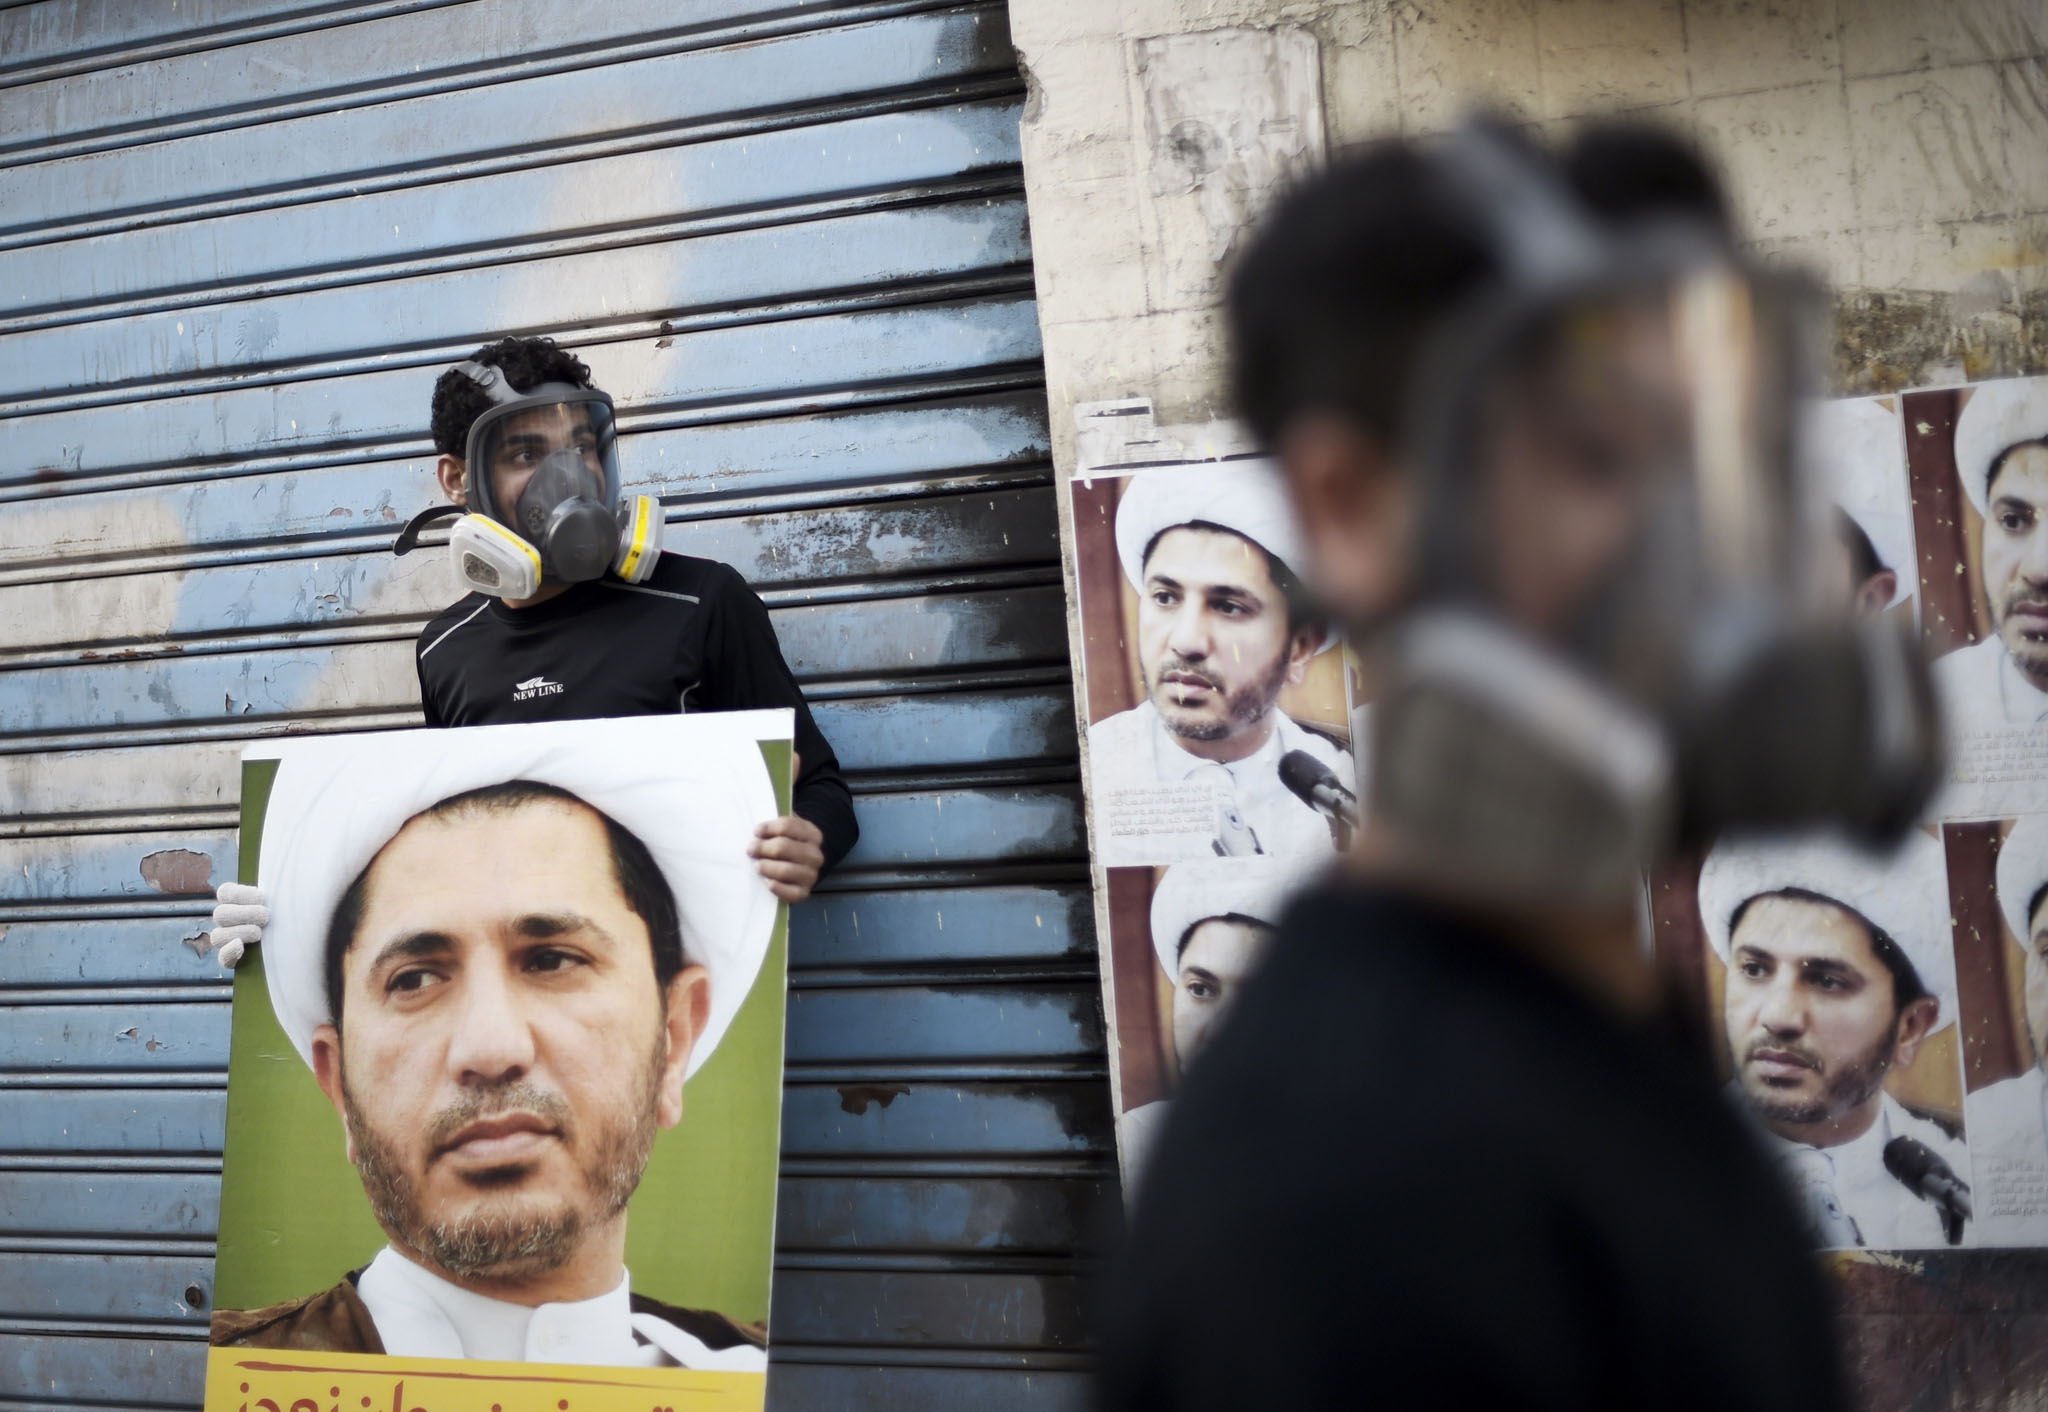 Bahraini protesters wearing gas masks, look on during clashes with police after a demonstration against the arrest of Sheikh Ali Salman (portrait), head of the Shiite opposition movement Al-Wefaq, in Salman's home village of Bilad al-Qadeem, on the outskirts of the capital Manama.